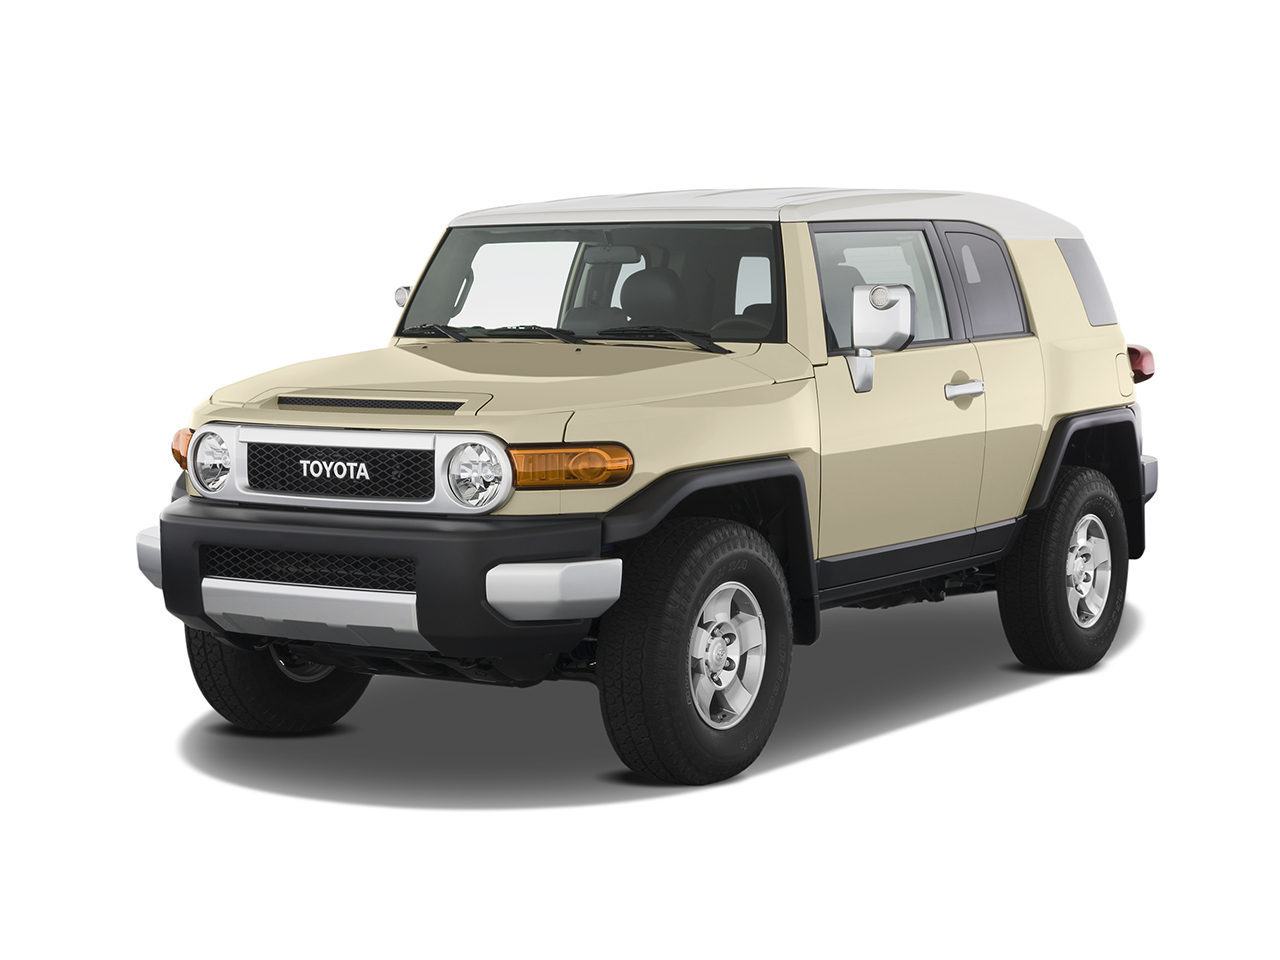 2018 Toyota FJ Cruiser Prices in UAE, Gulf Specs & Reviews ...